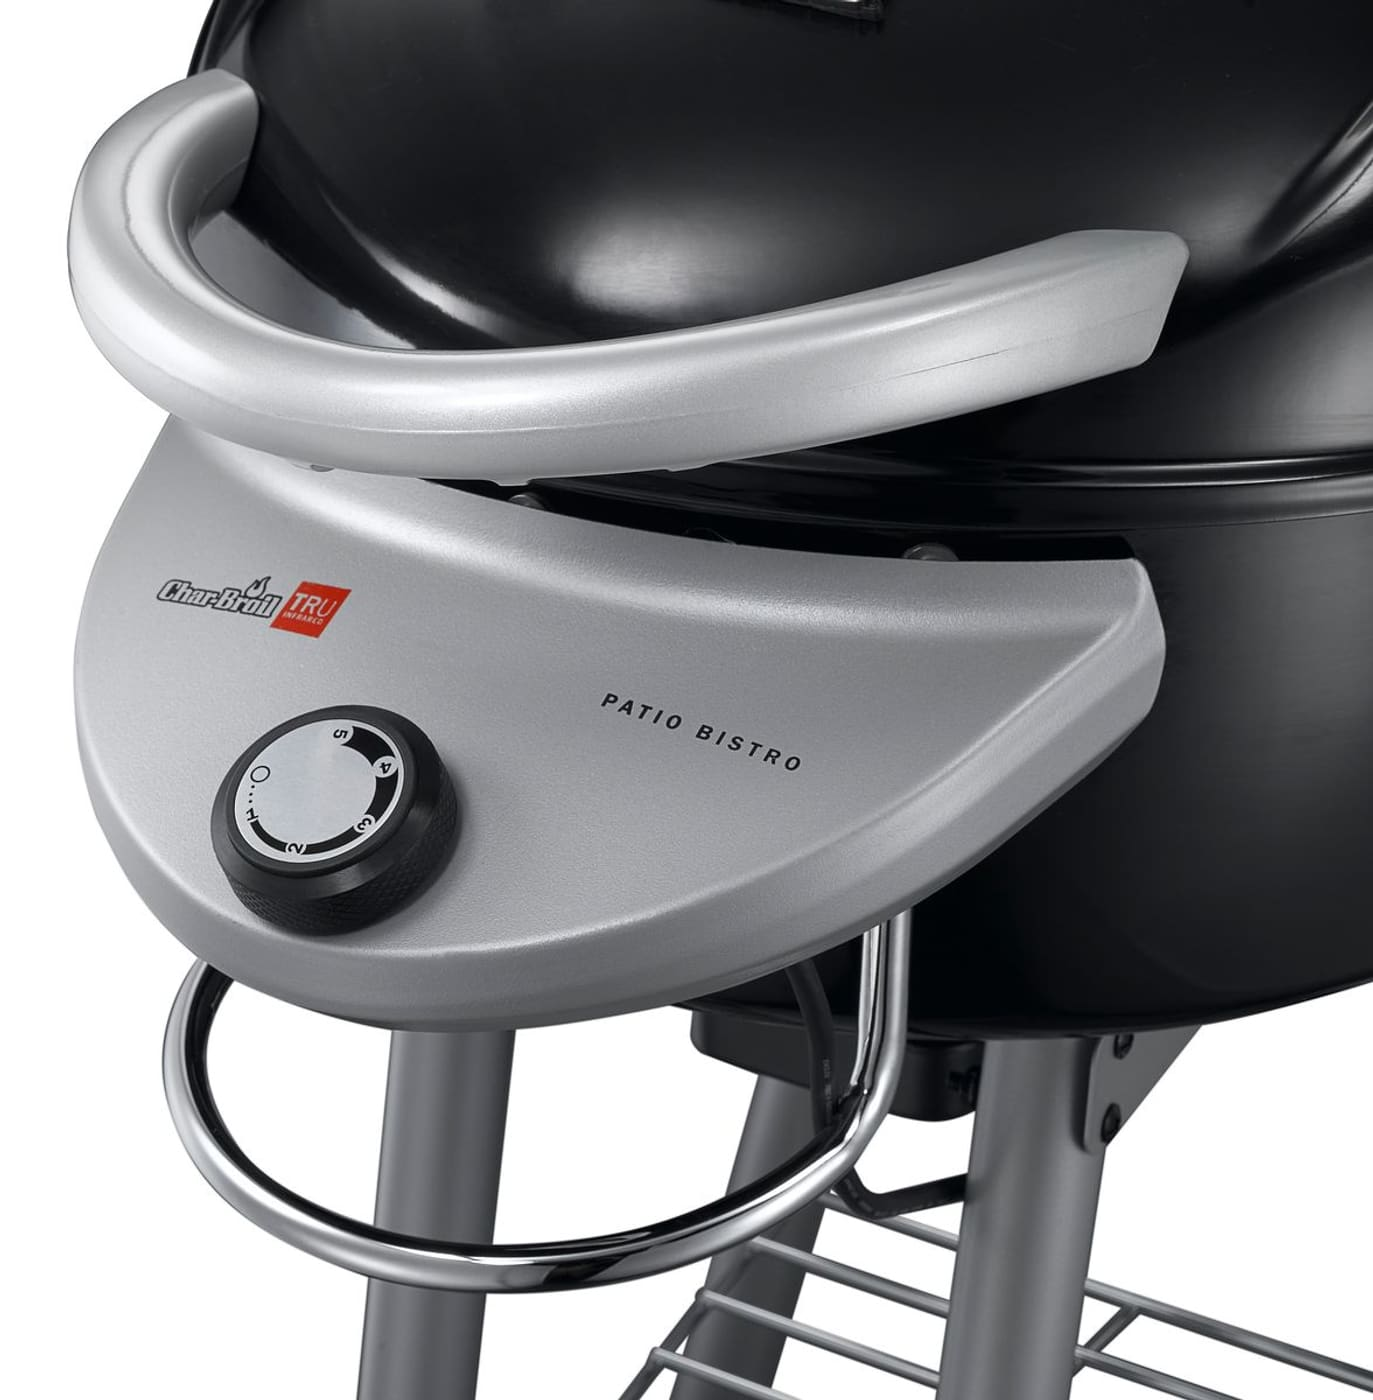 patio bistro broil with you master barbecue t especially fire if play a can char electric score